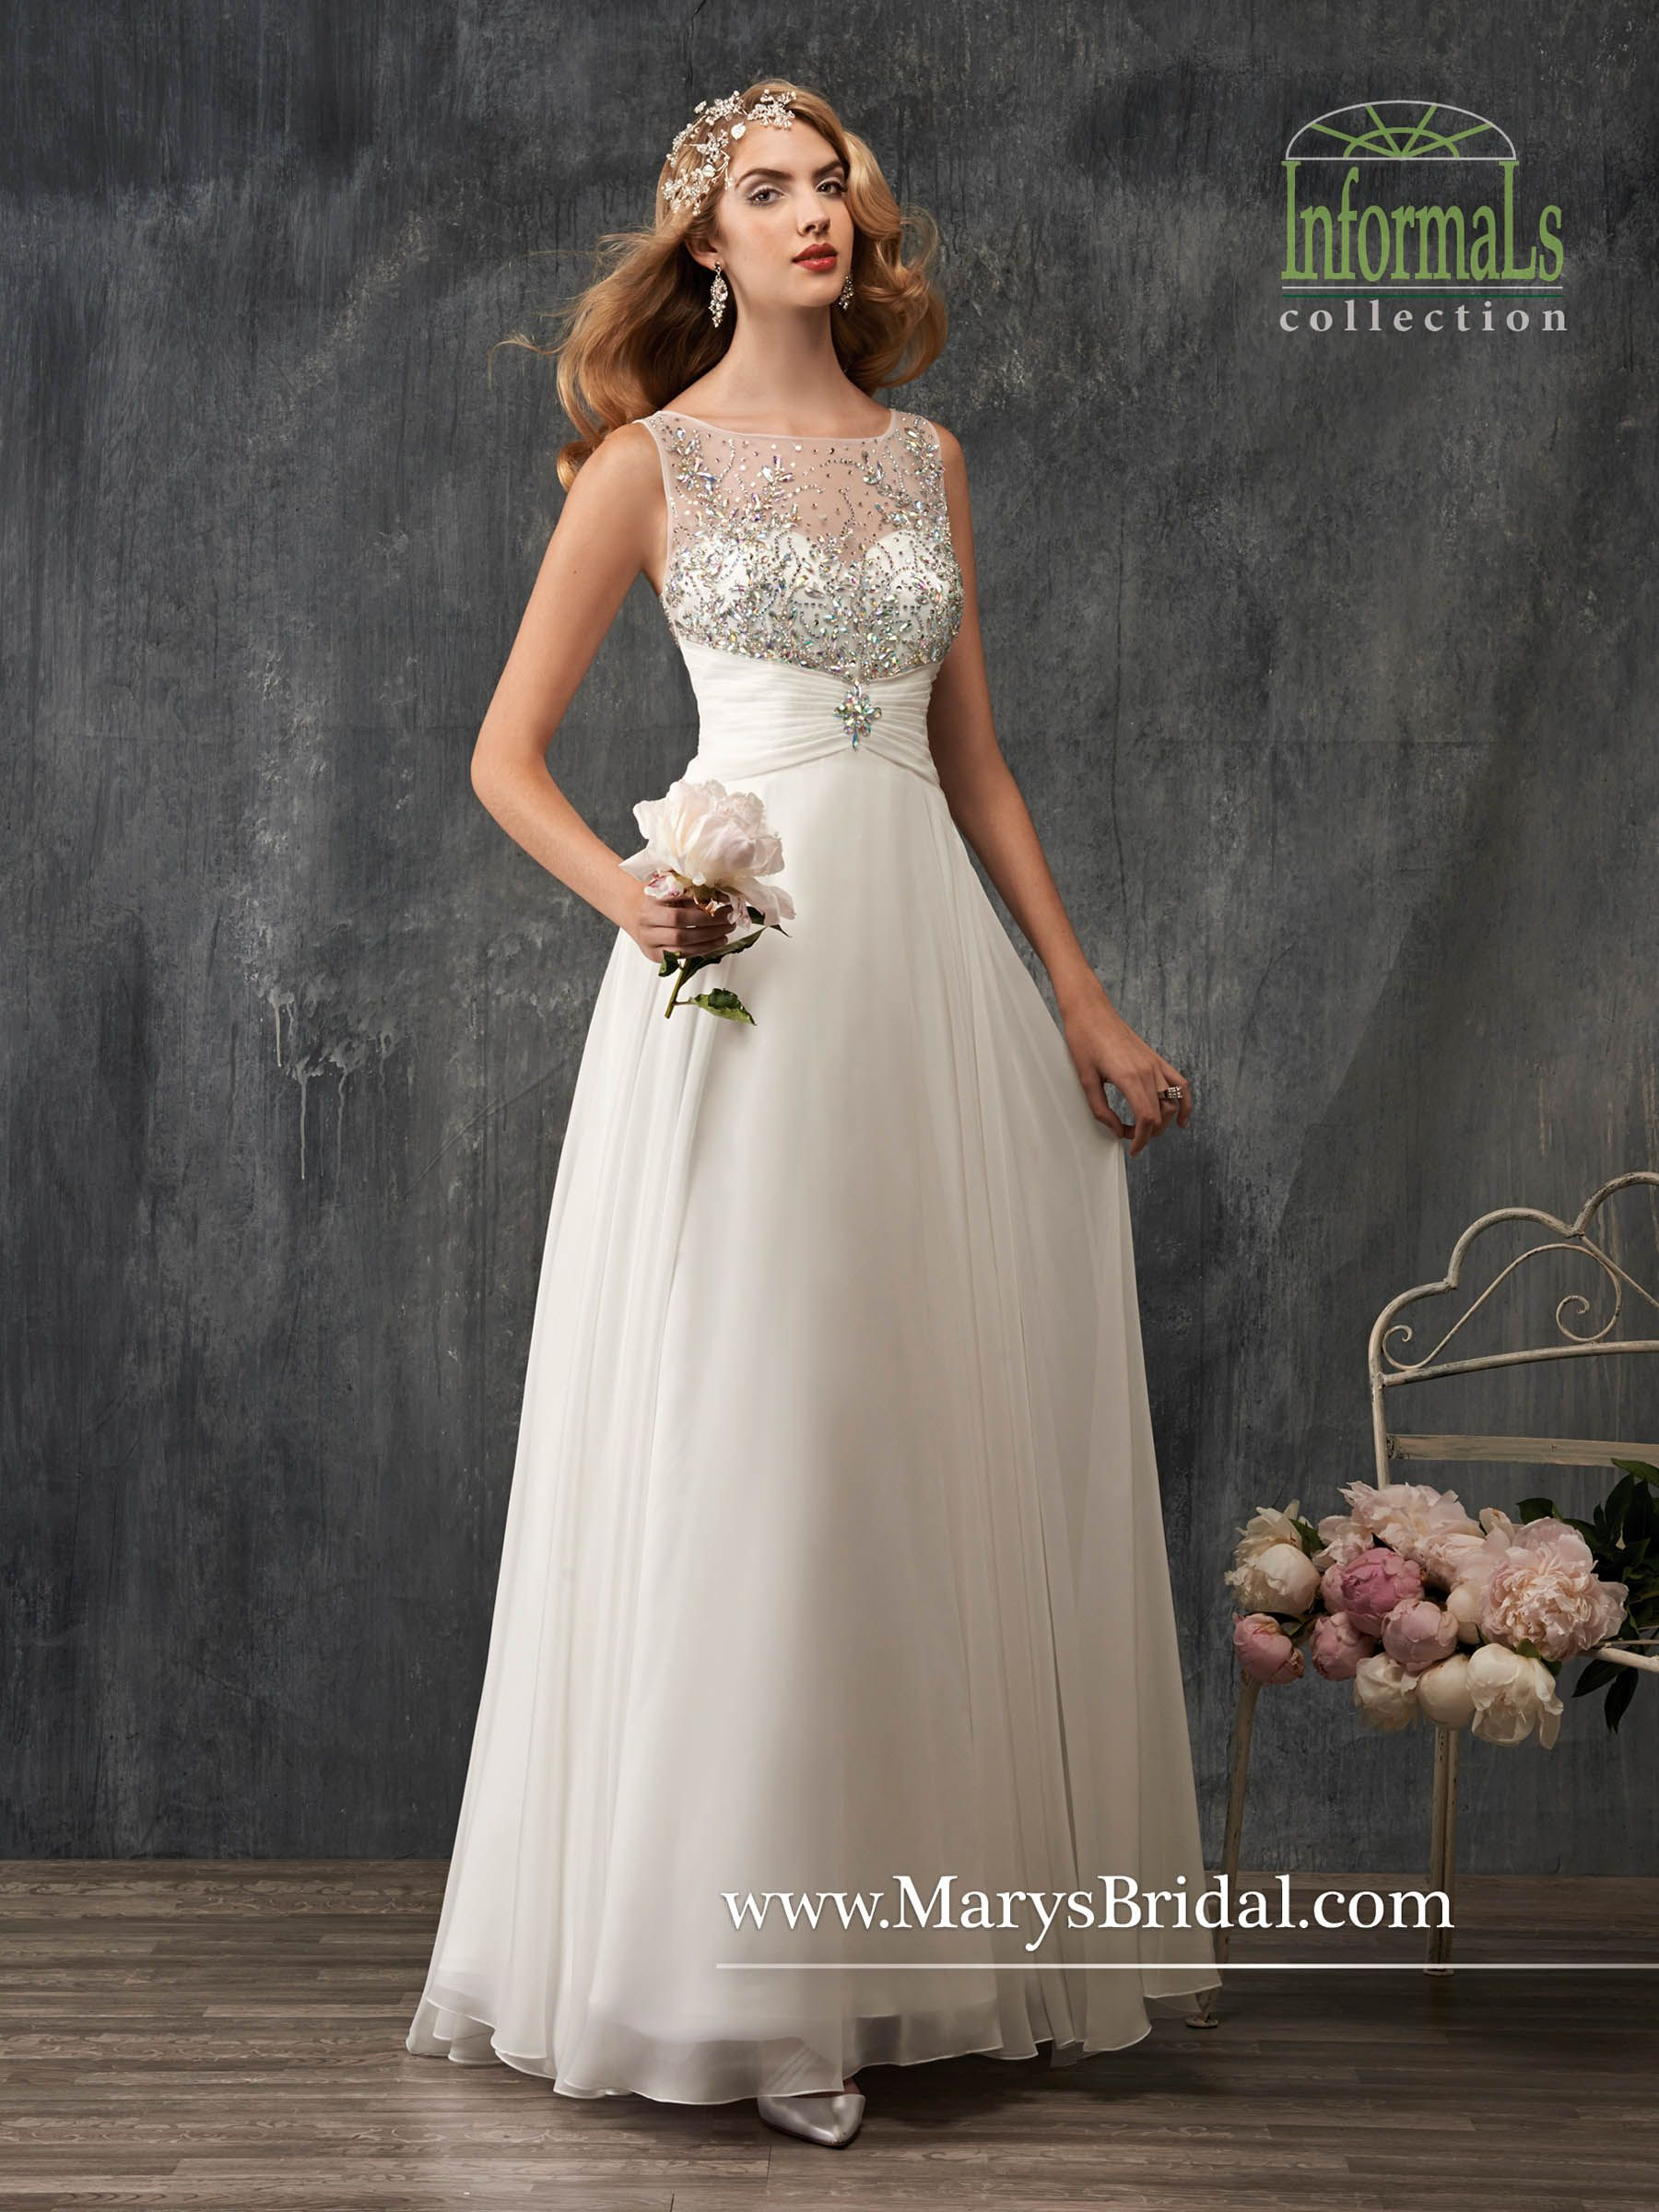 Amazing Mary us Bridal informal collection